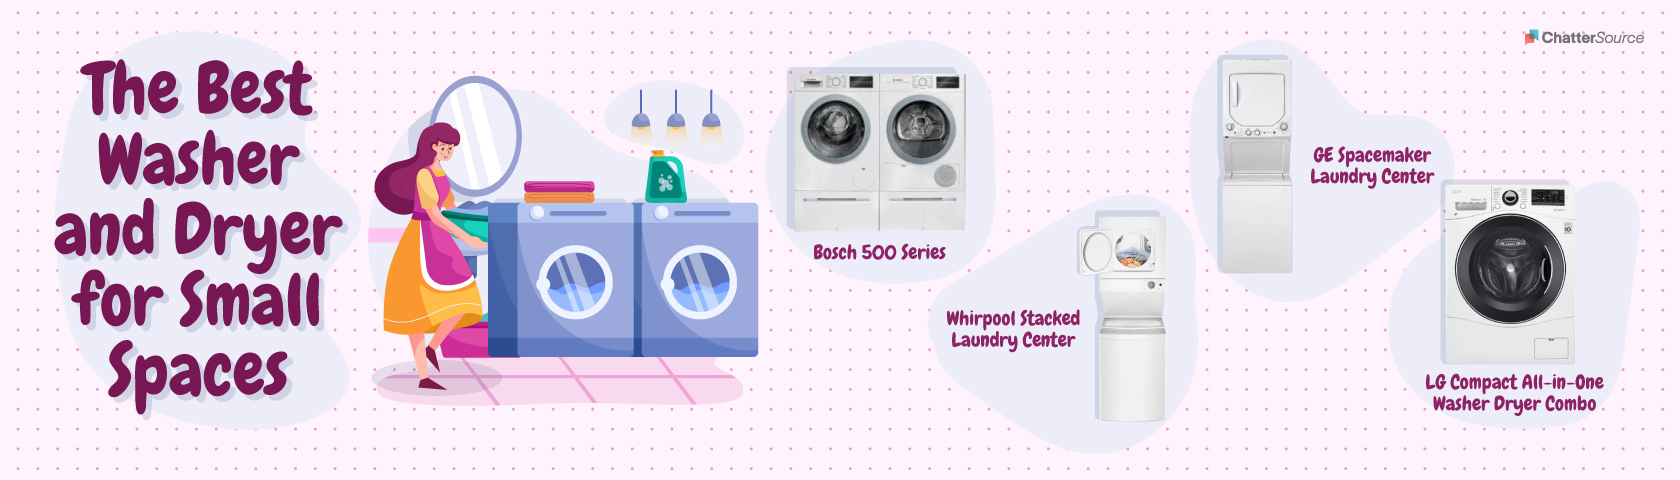 small washer and dryer small spaces infographic